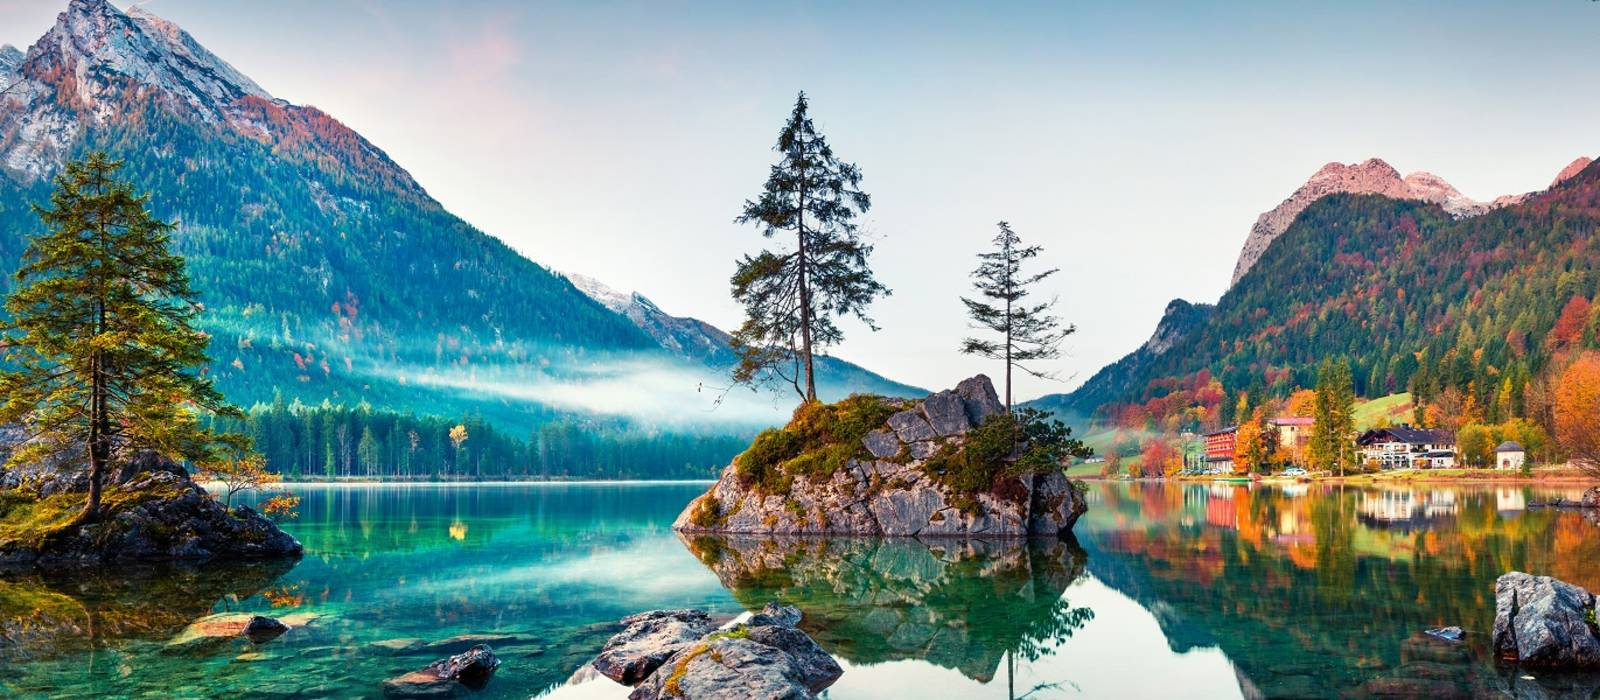 Beautiful nature with lake and mountains